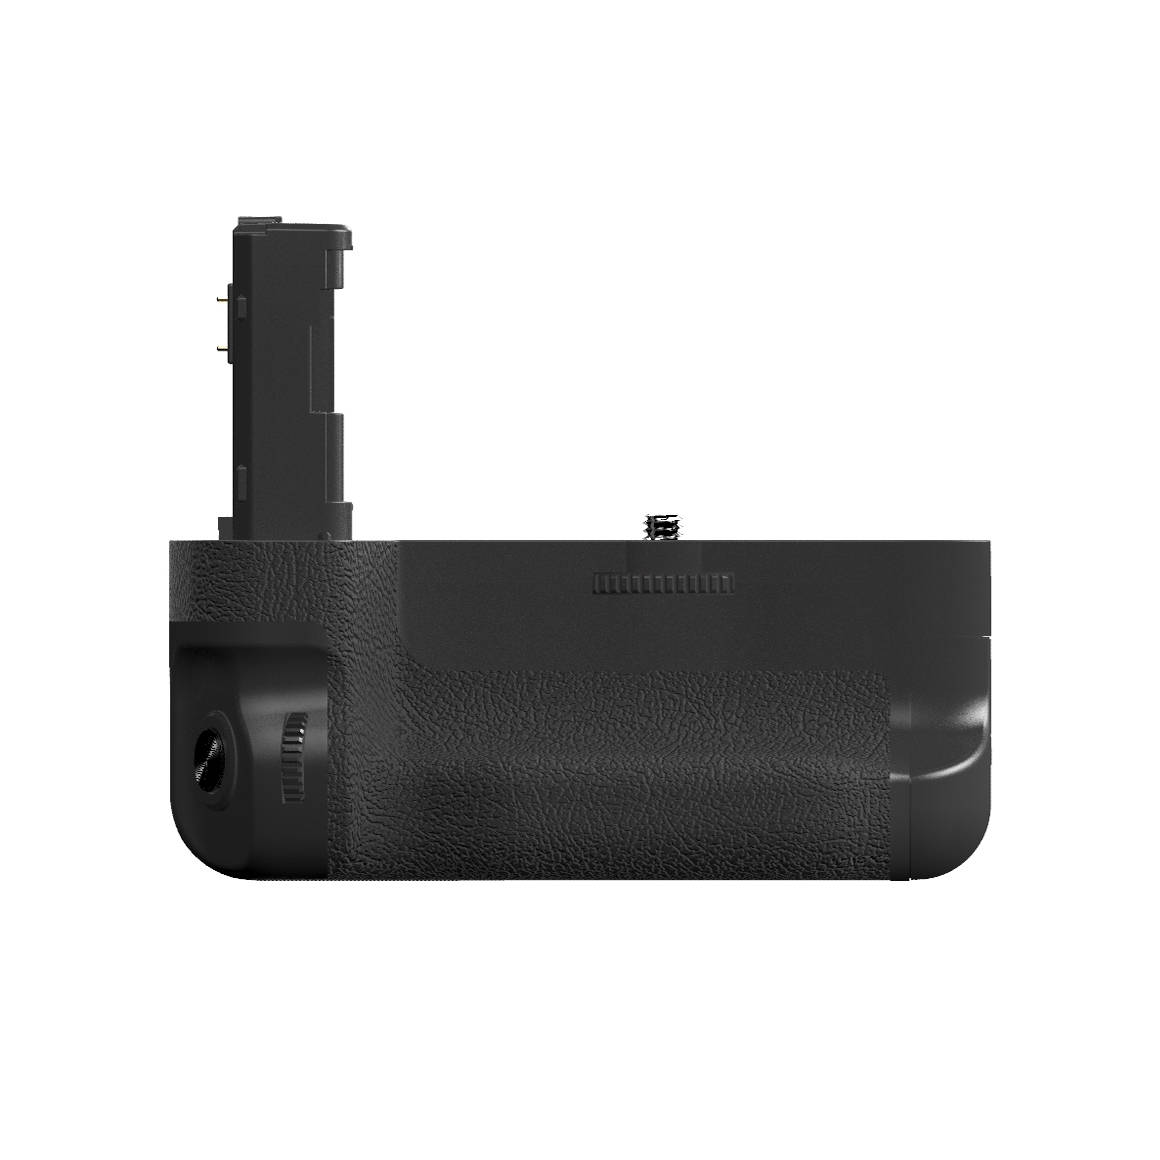 Meike MK-A7II Battery Grip for Sony A7 II A7R II as Sony VG-C2EM camera